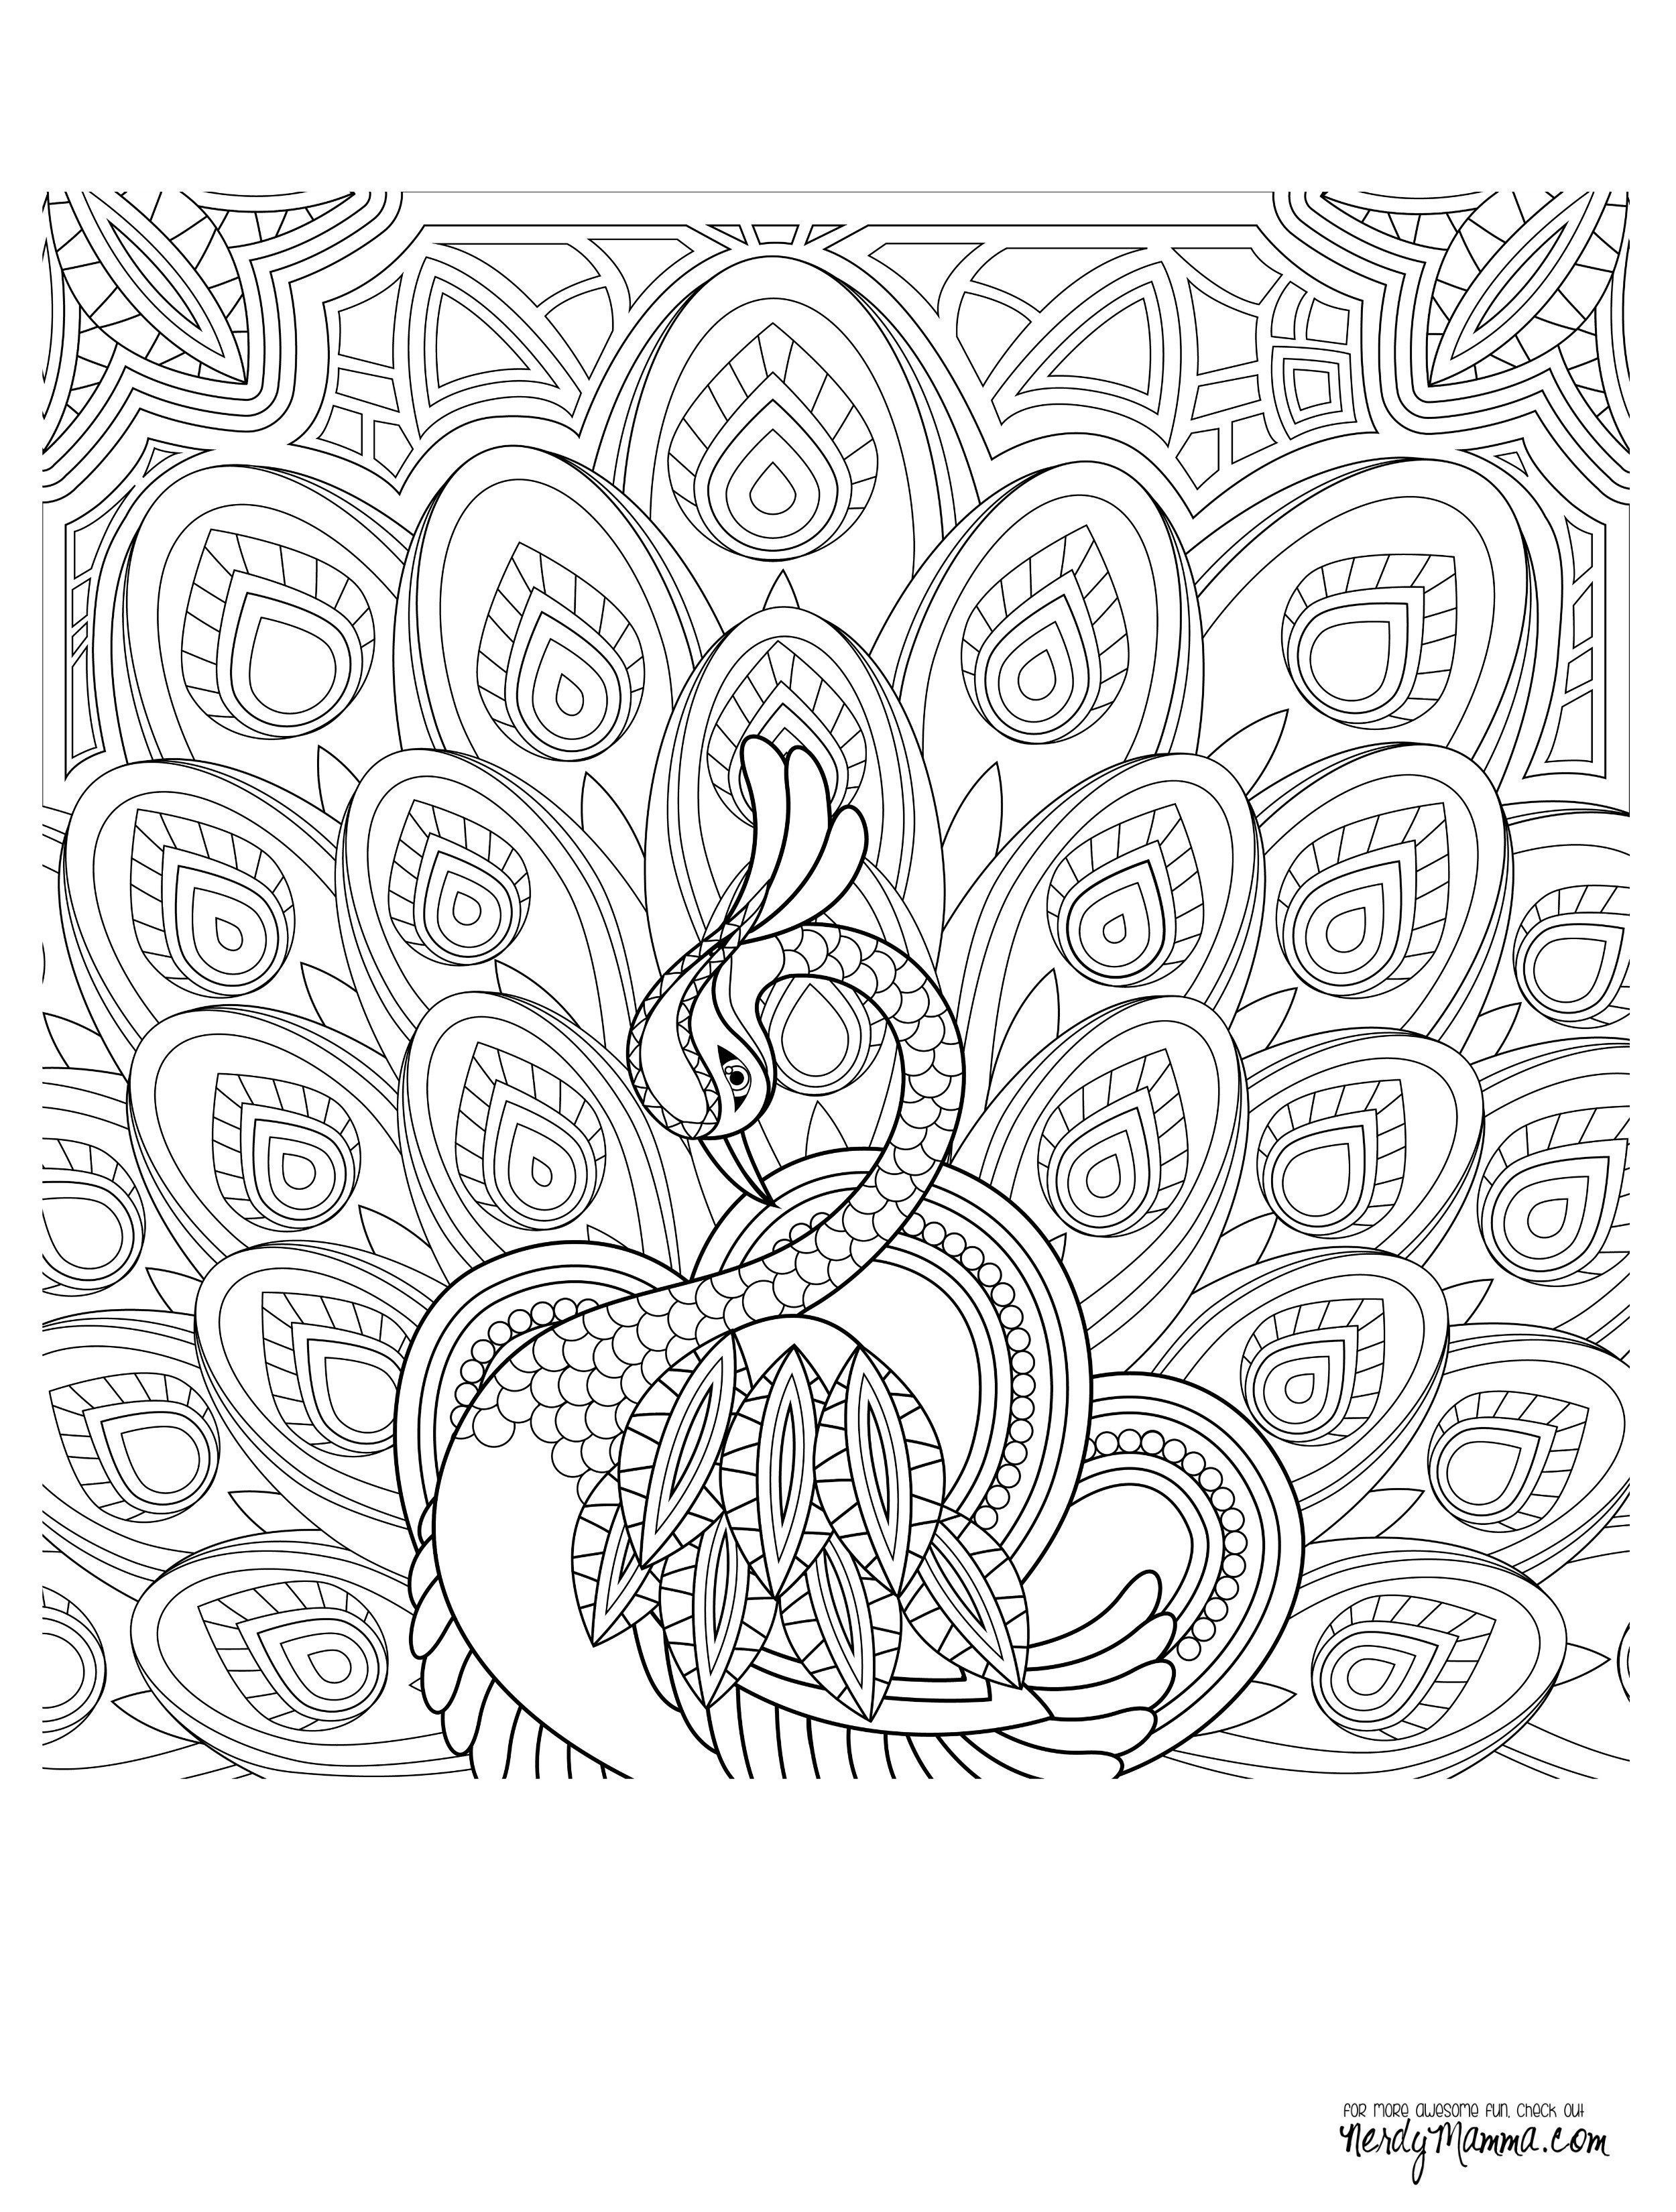 Wild Turkey Coloring Pages  Gallery 17j - Save it to your computer